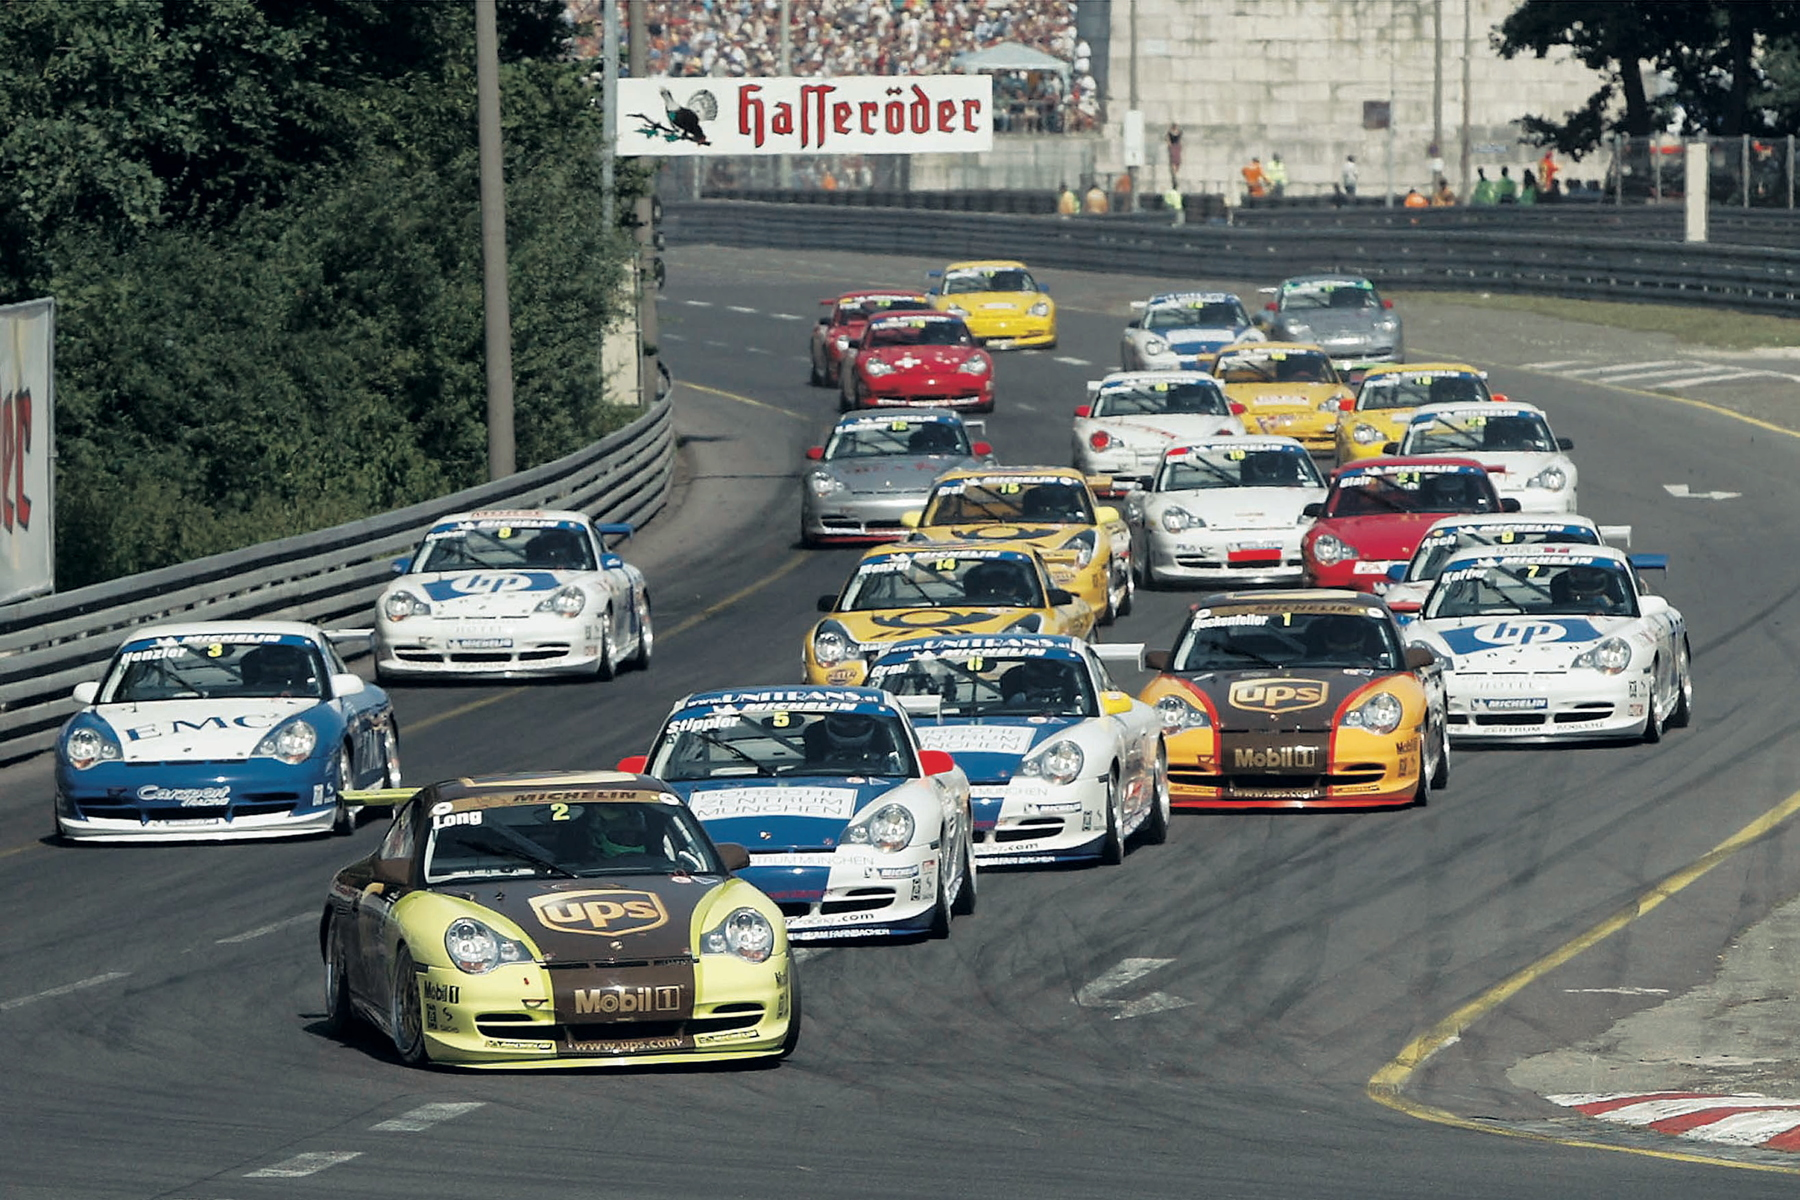 ...and we chart the history of the one-make series it raced in with our '25 years of Carrera Cup' celebration.